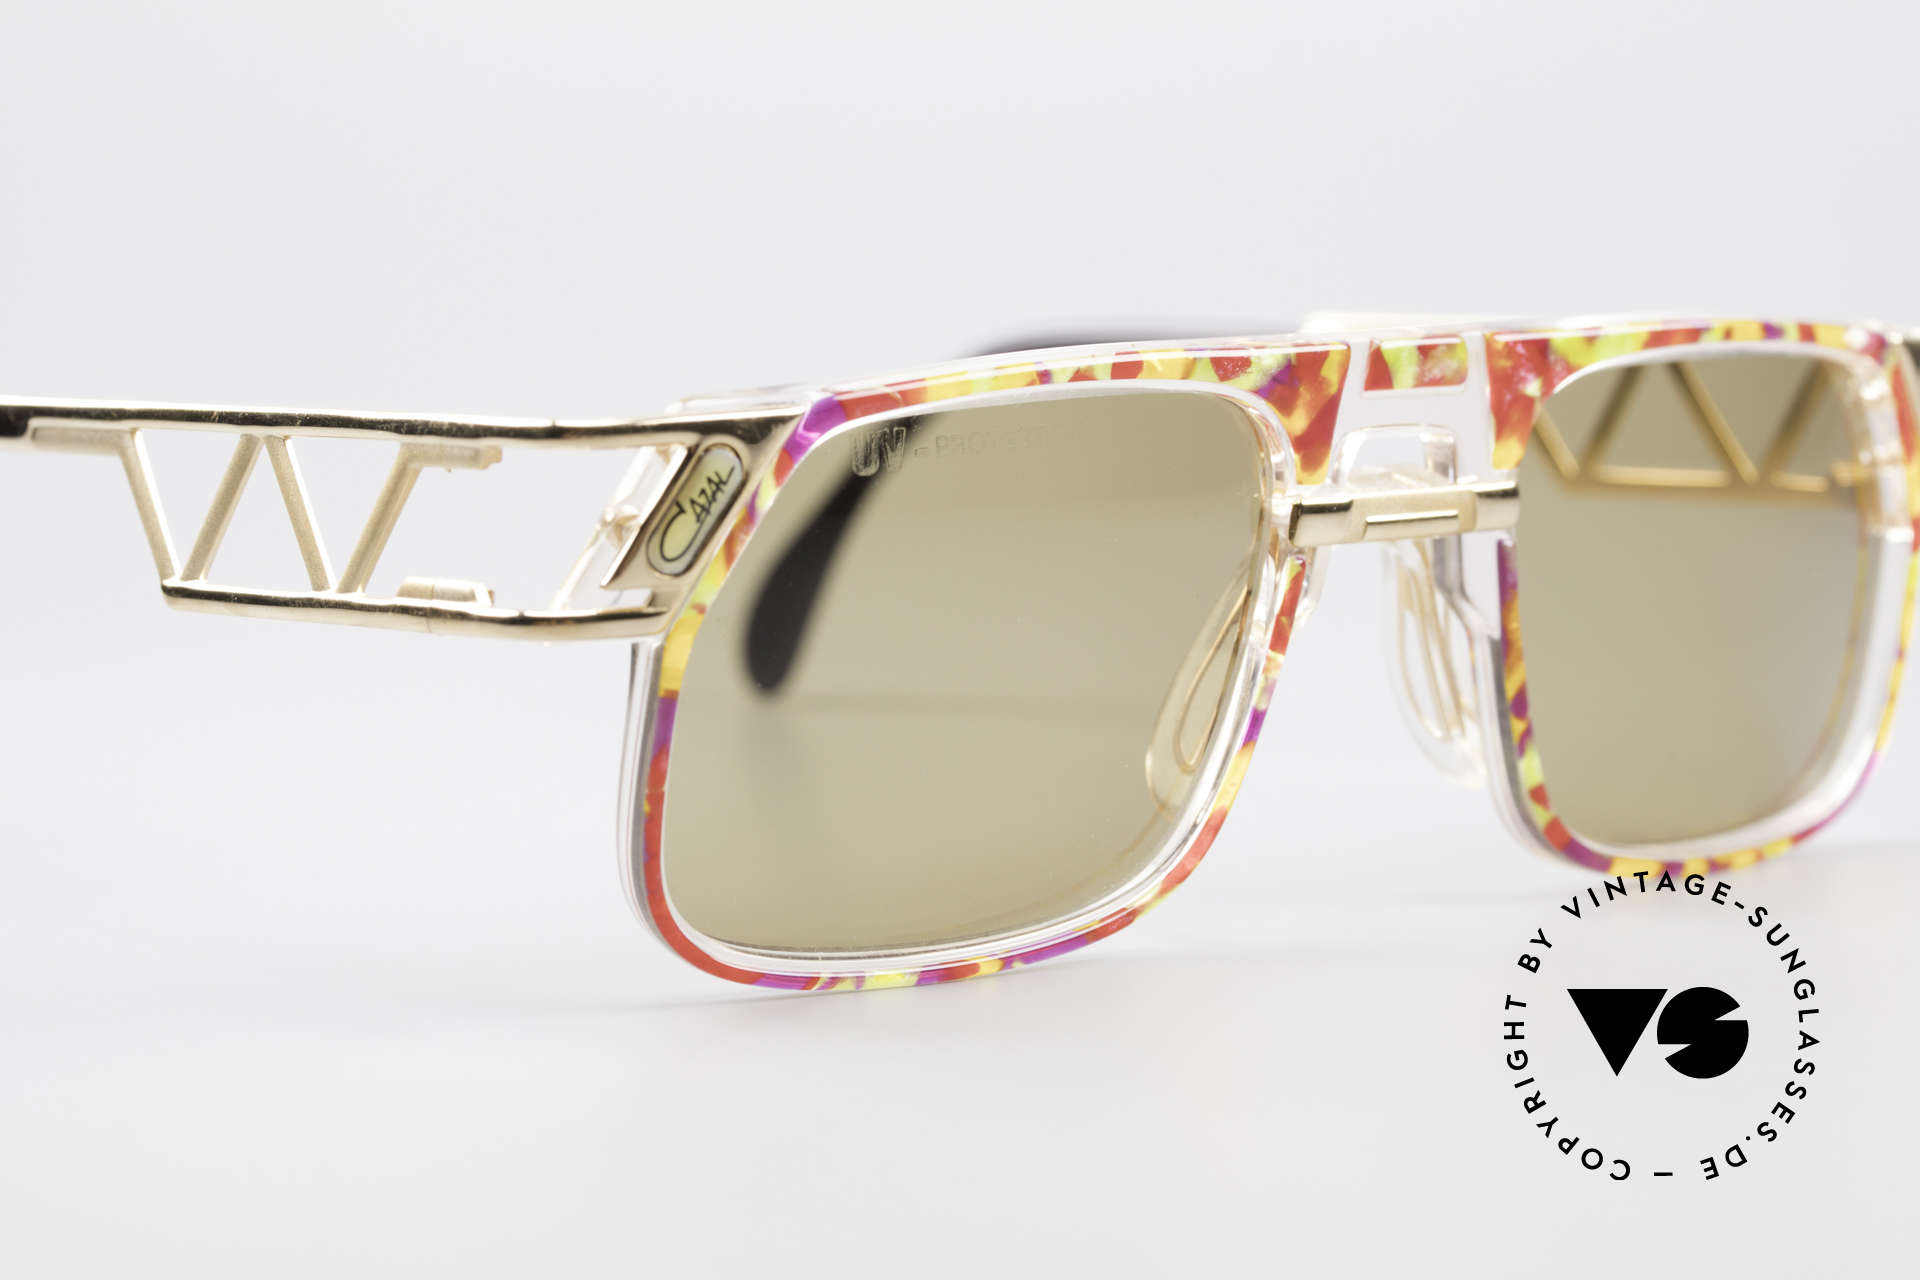 Cazal 876 90's Designer Vintage Frame, never worn (like all our rare vintage designer sunglasses), Made for Men and Women